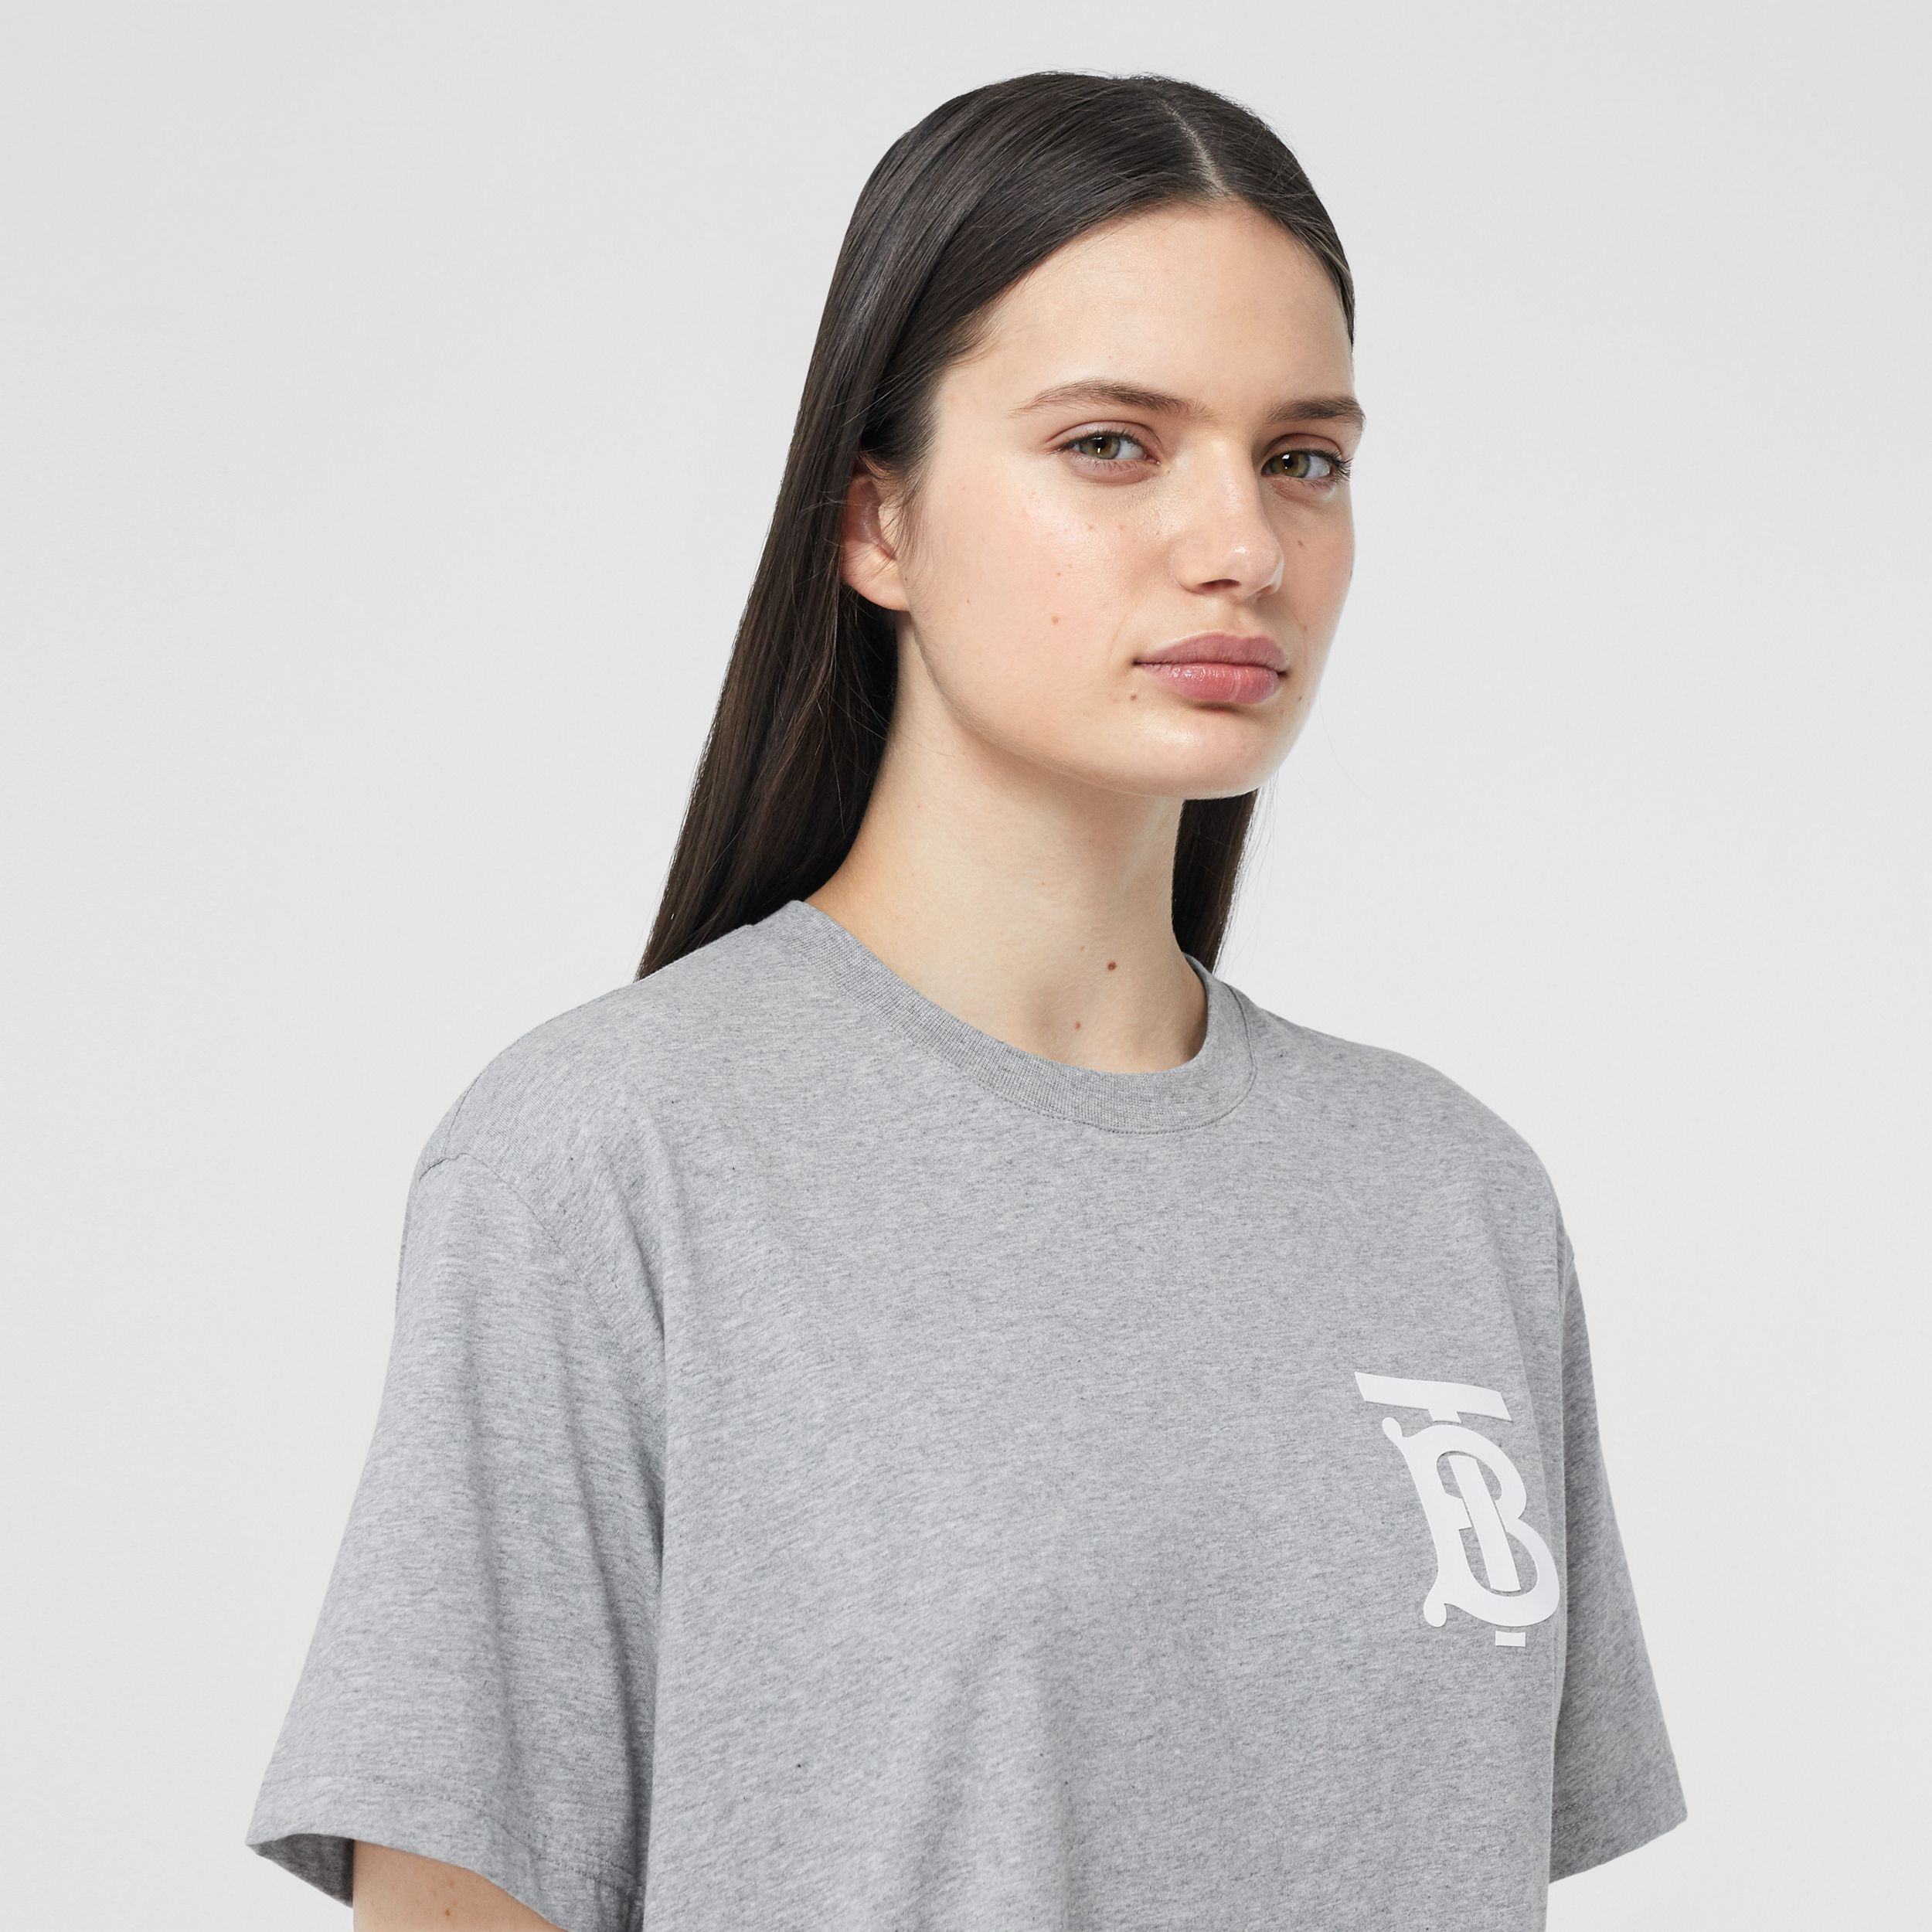 Monogram Motif Cotton Oversized T-shirt in Pale Grey Melange - Women | Burberry - 2